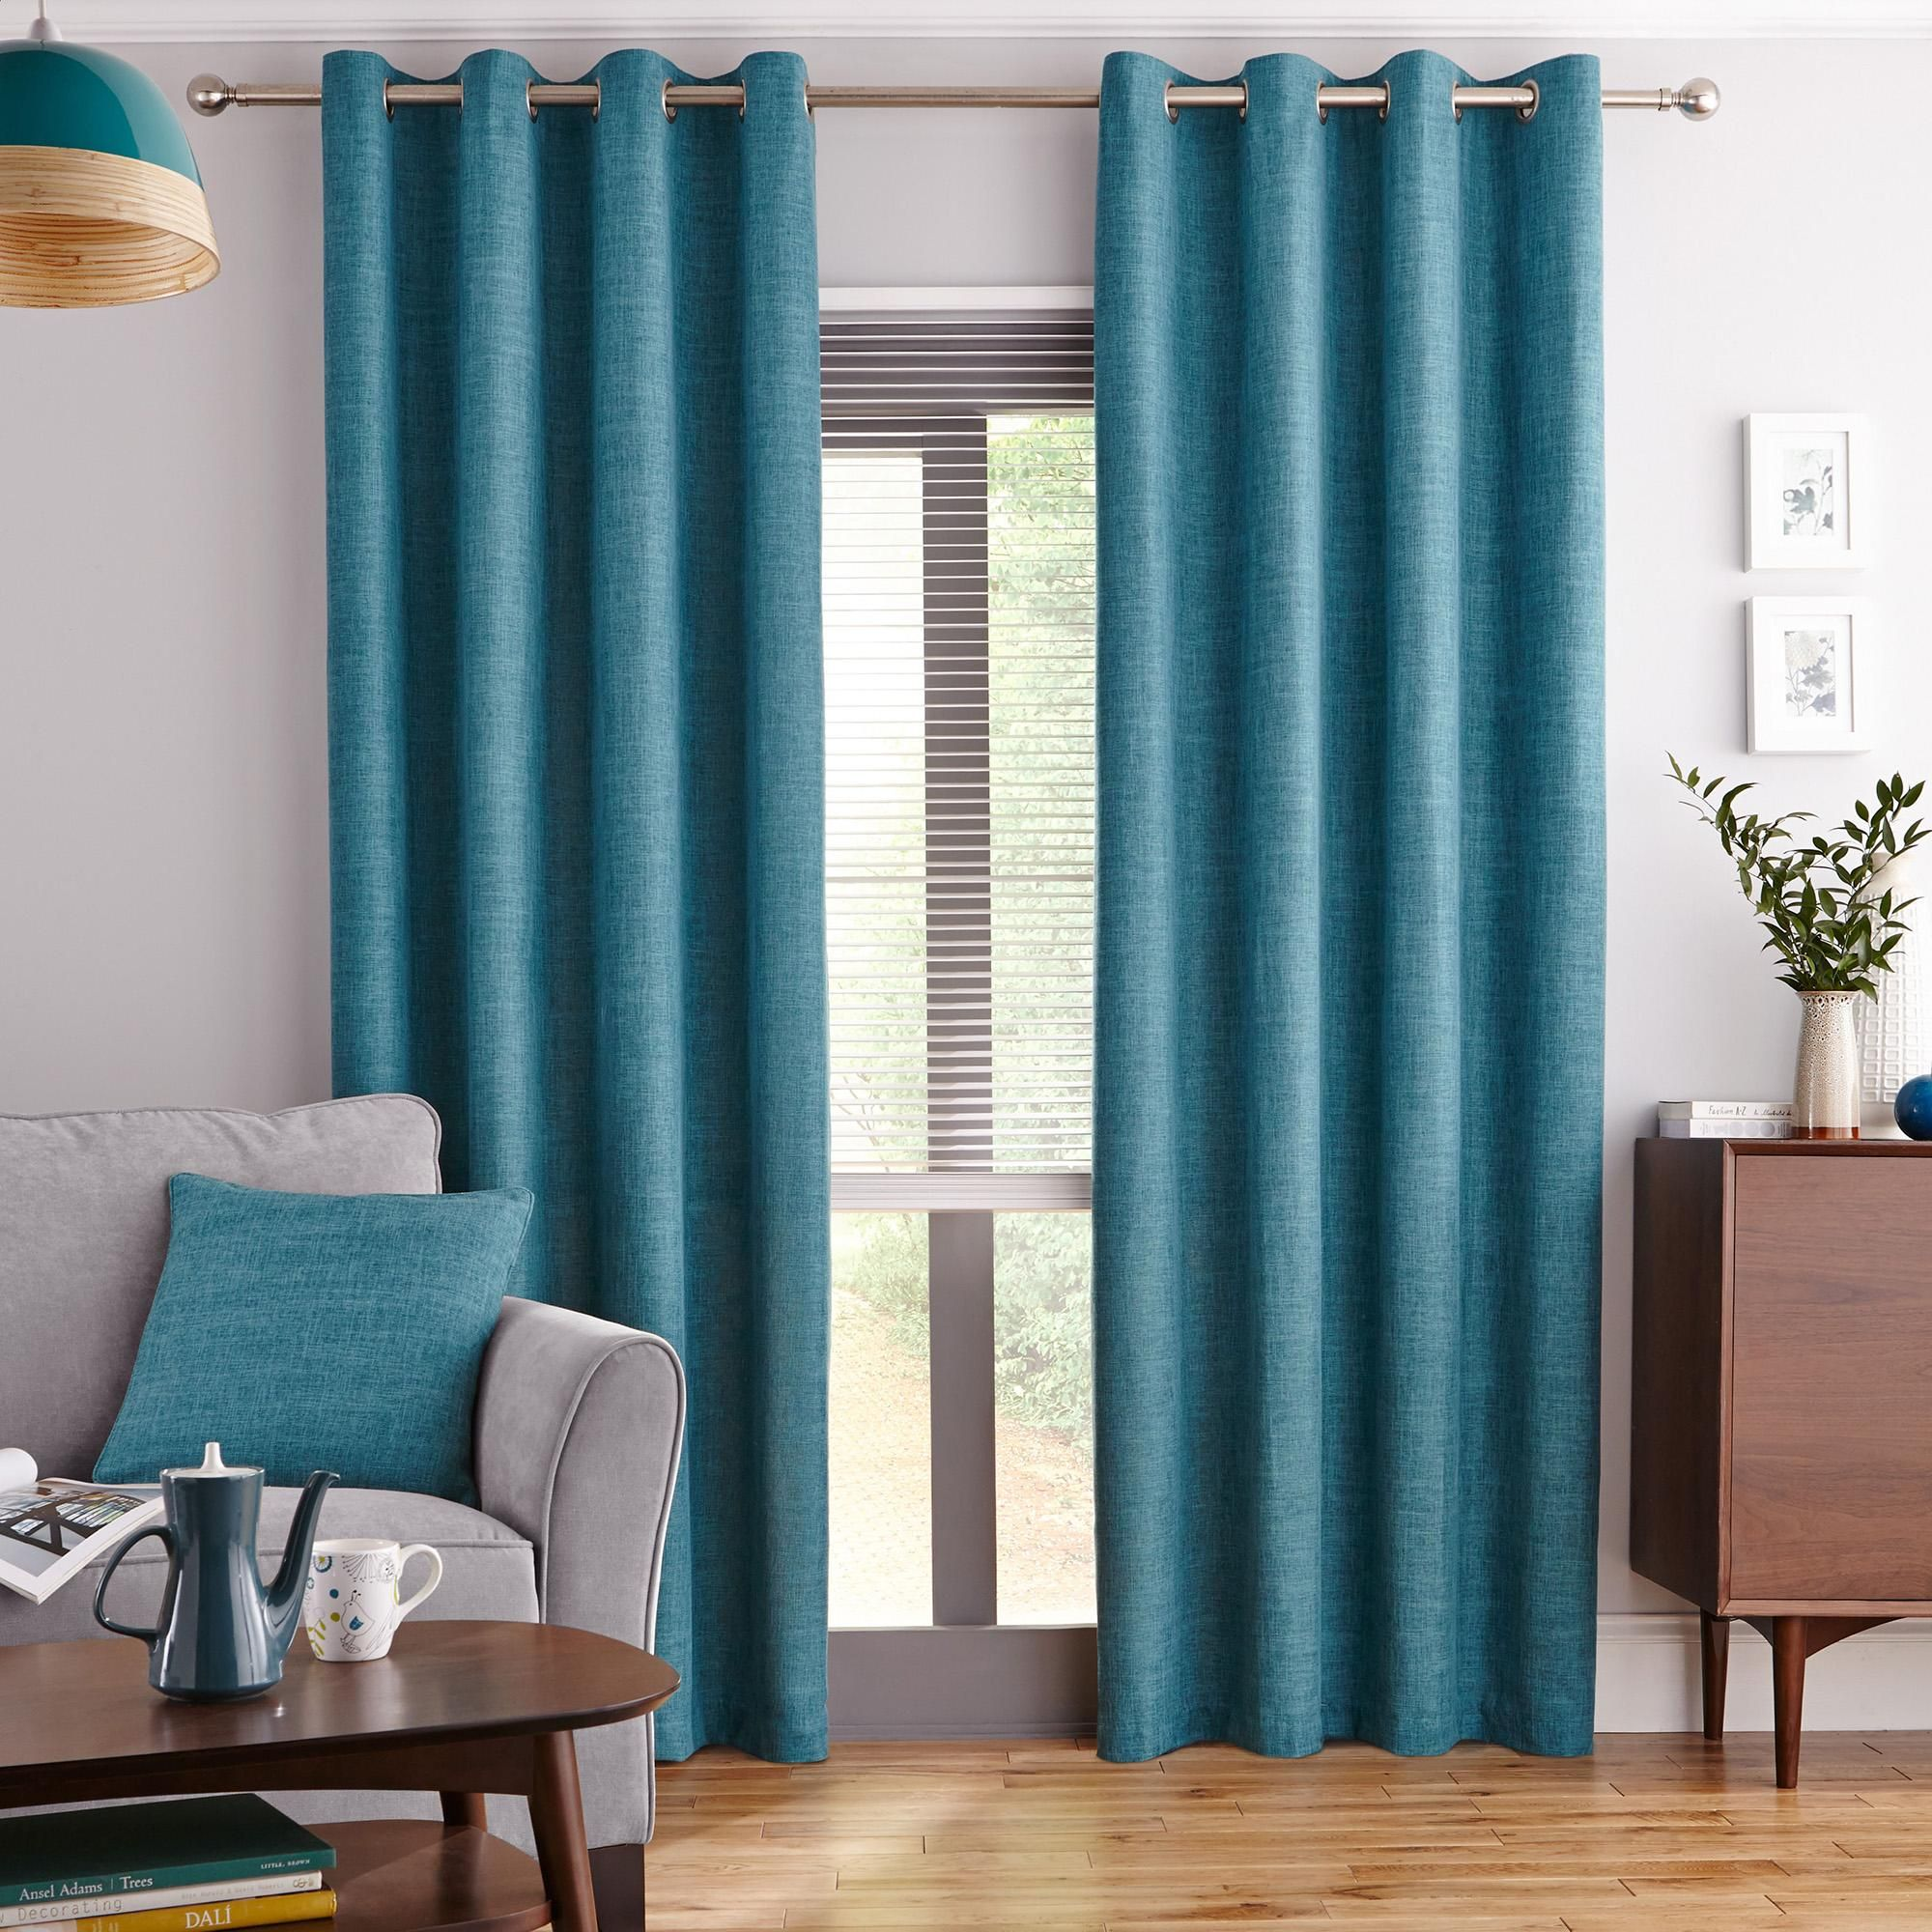 Vermont Teal Lined Eyelet Curtains